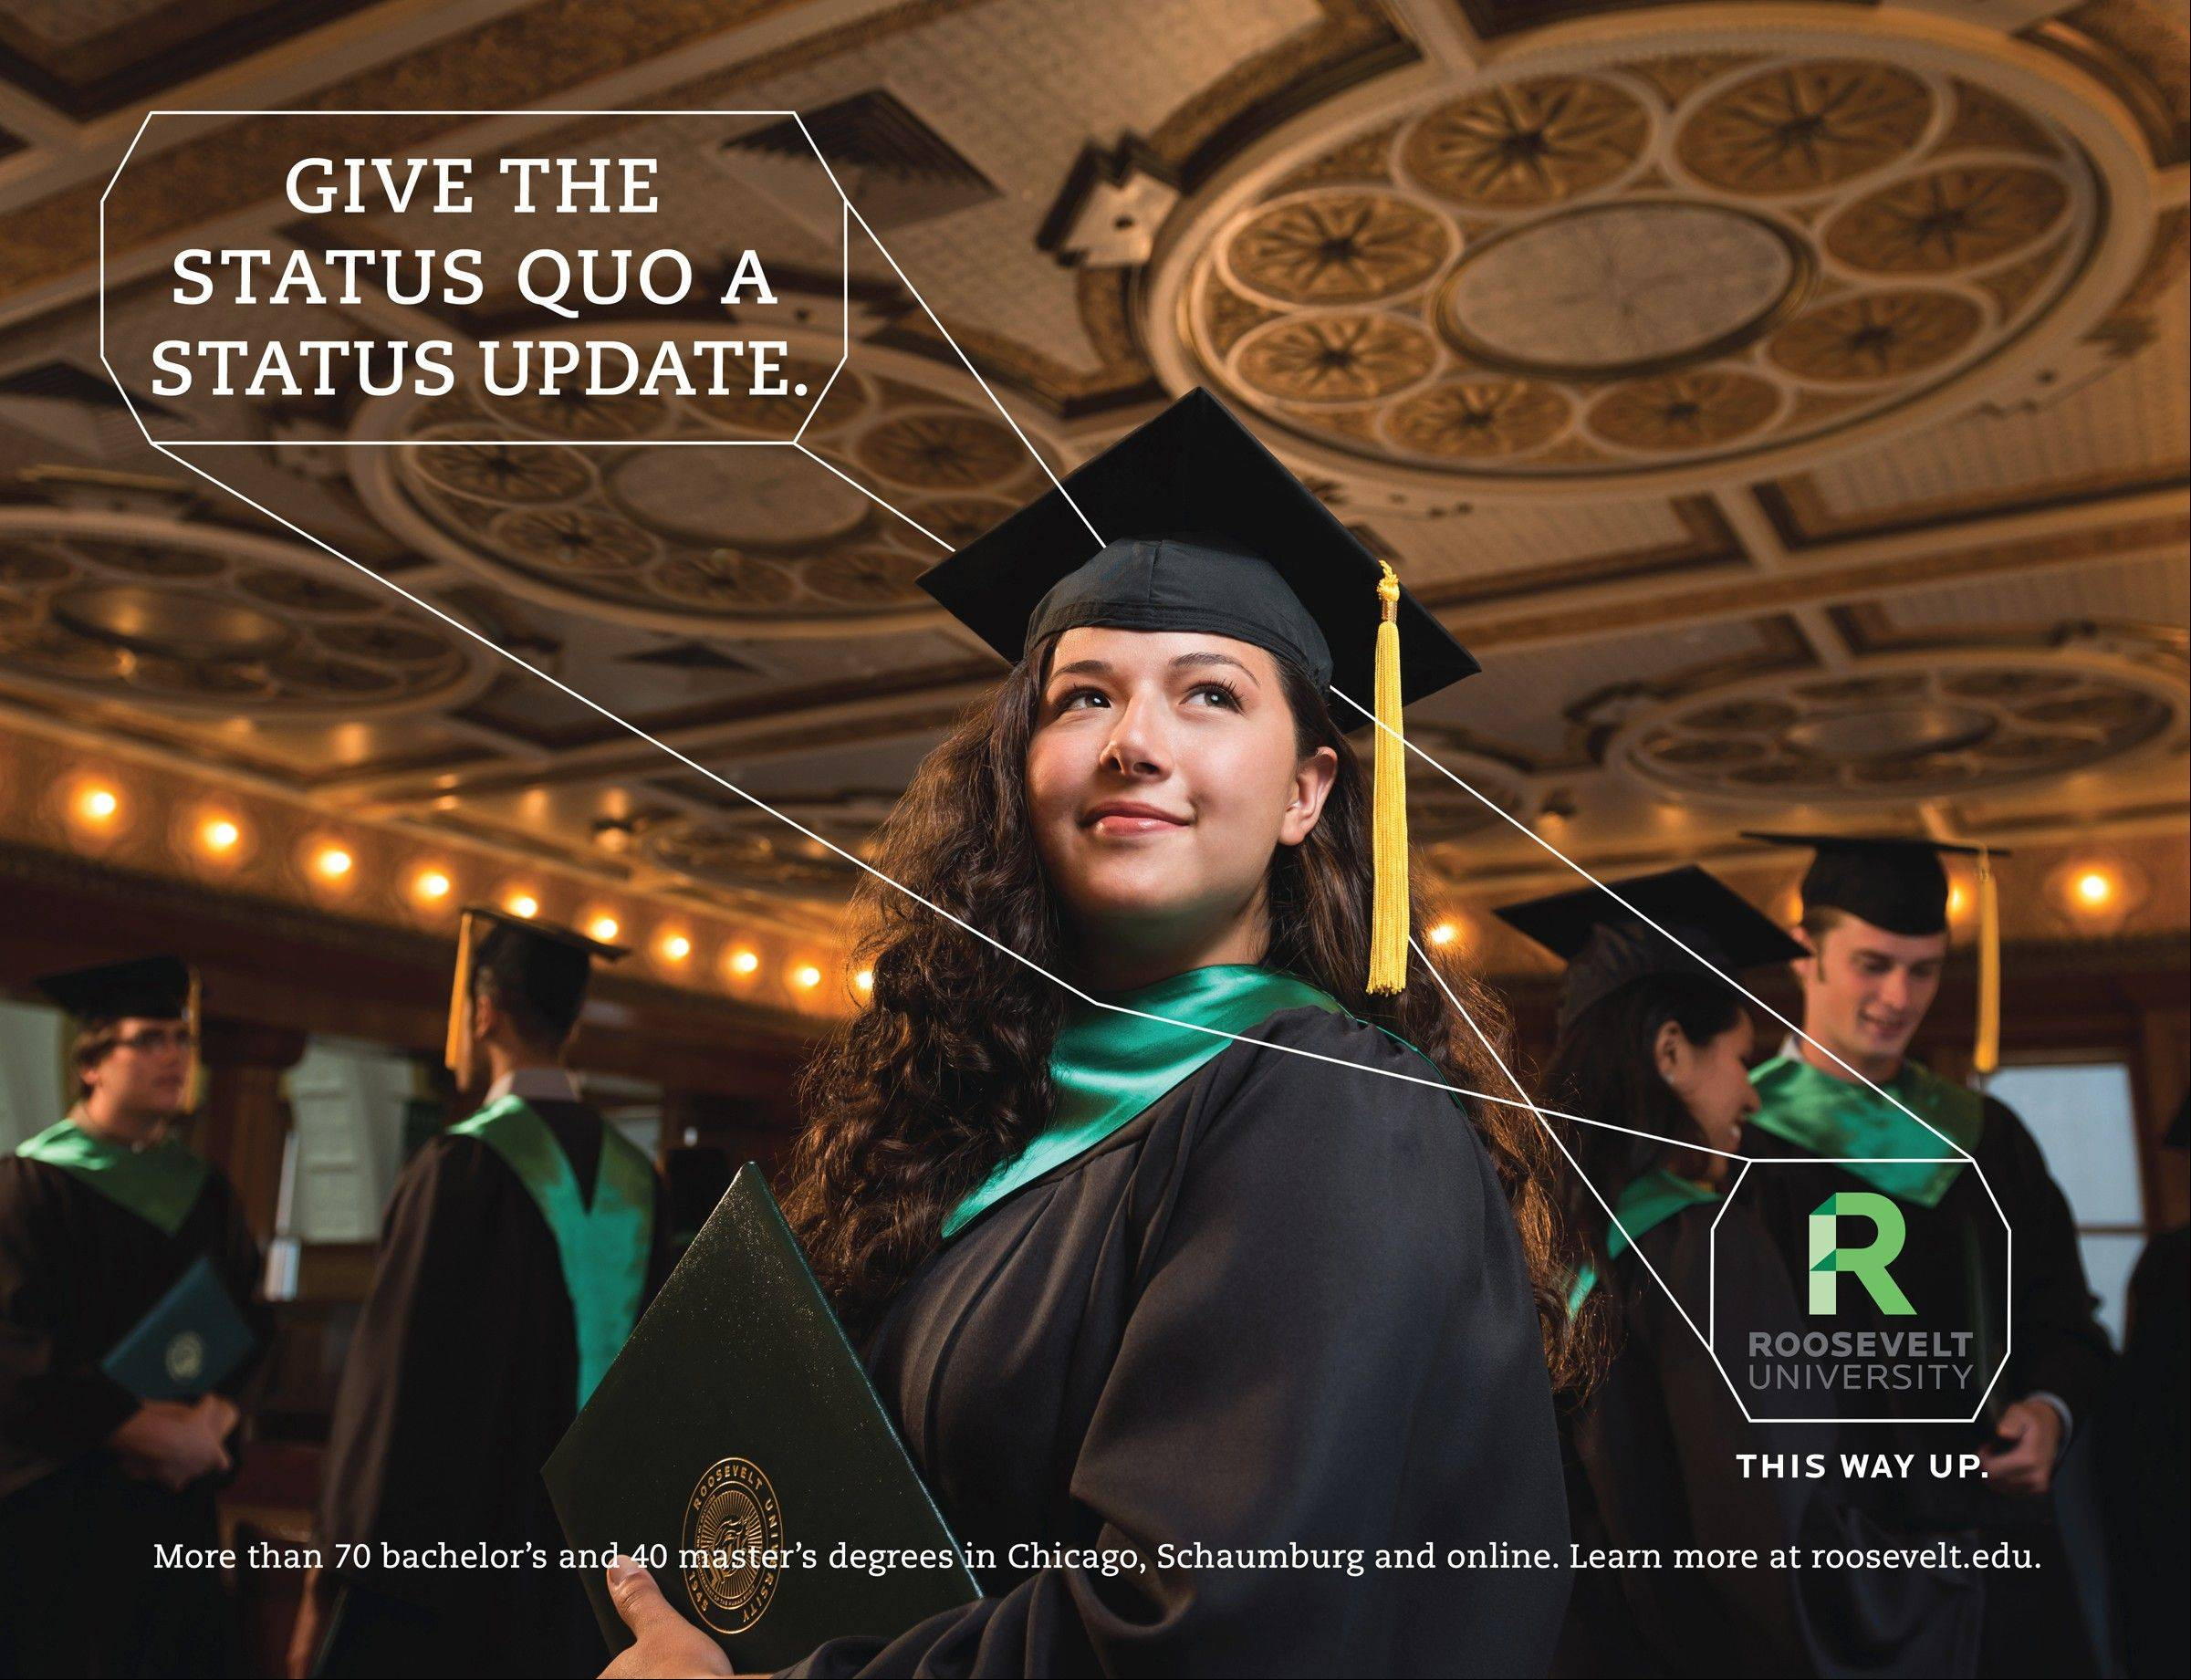 Victoria Pena of Glendale Heights is one of the stars of a new Roosevelt University ad campaign aimed at prospective students.